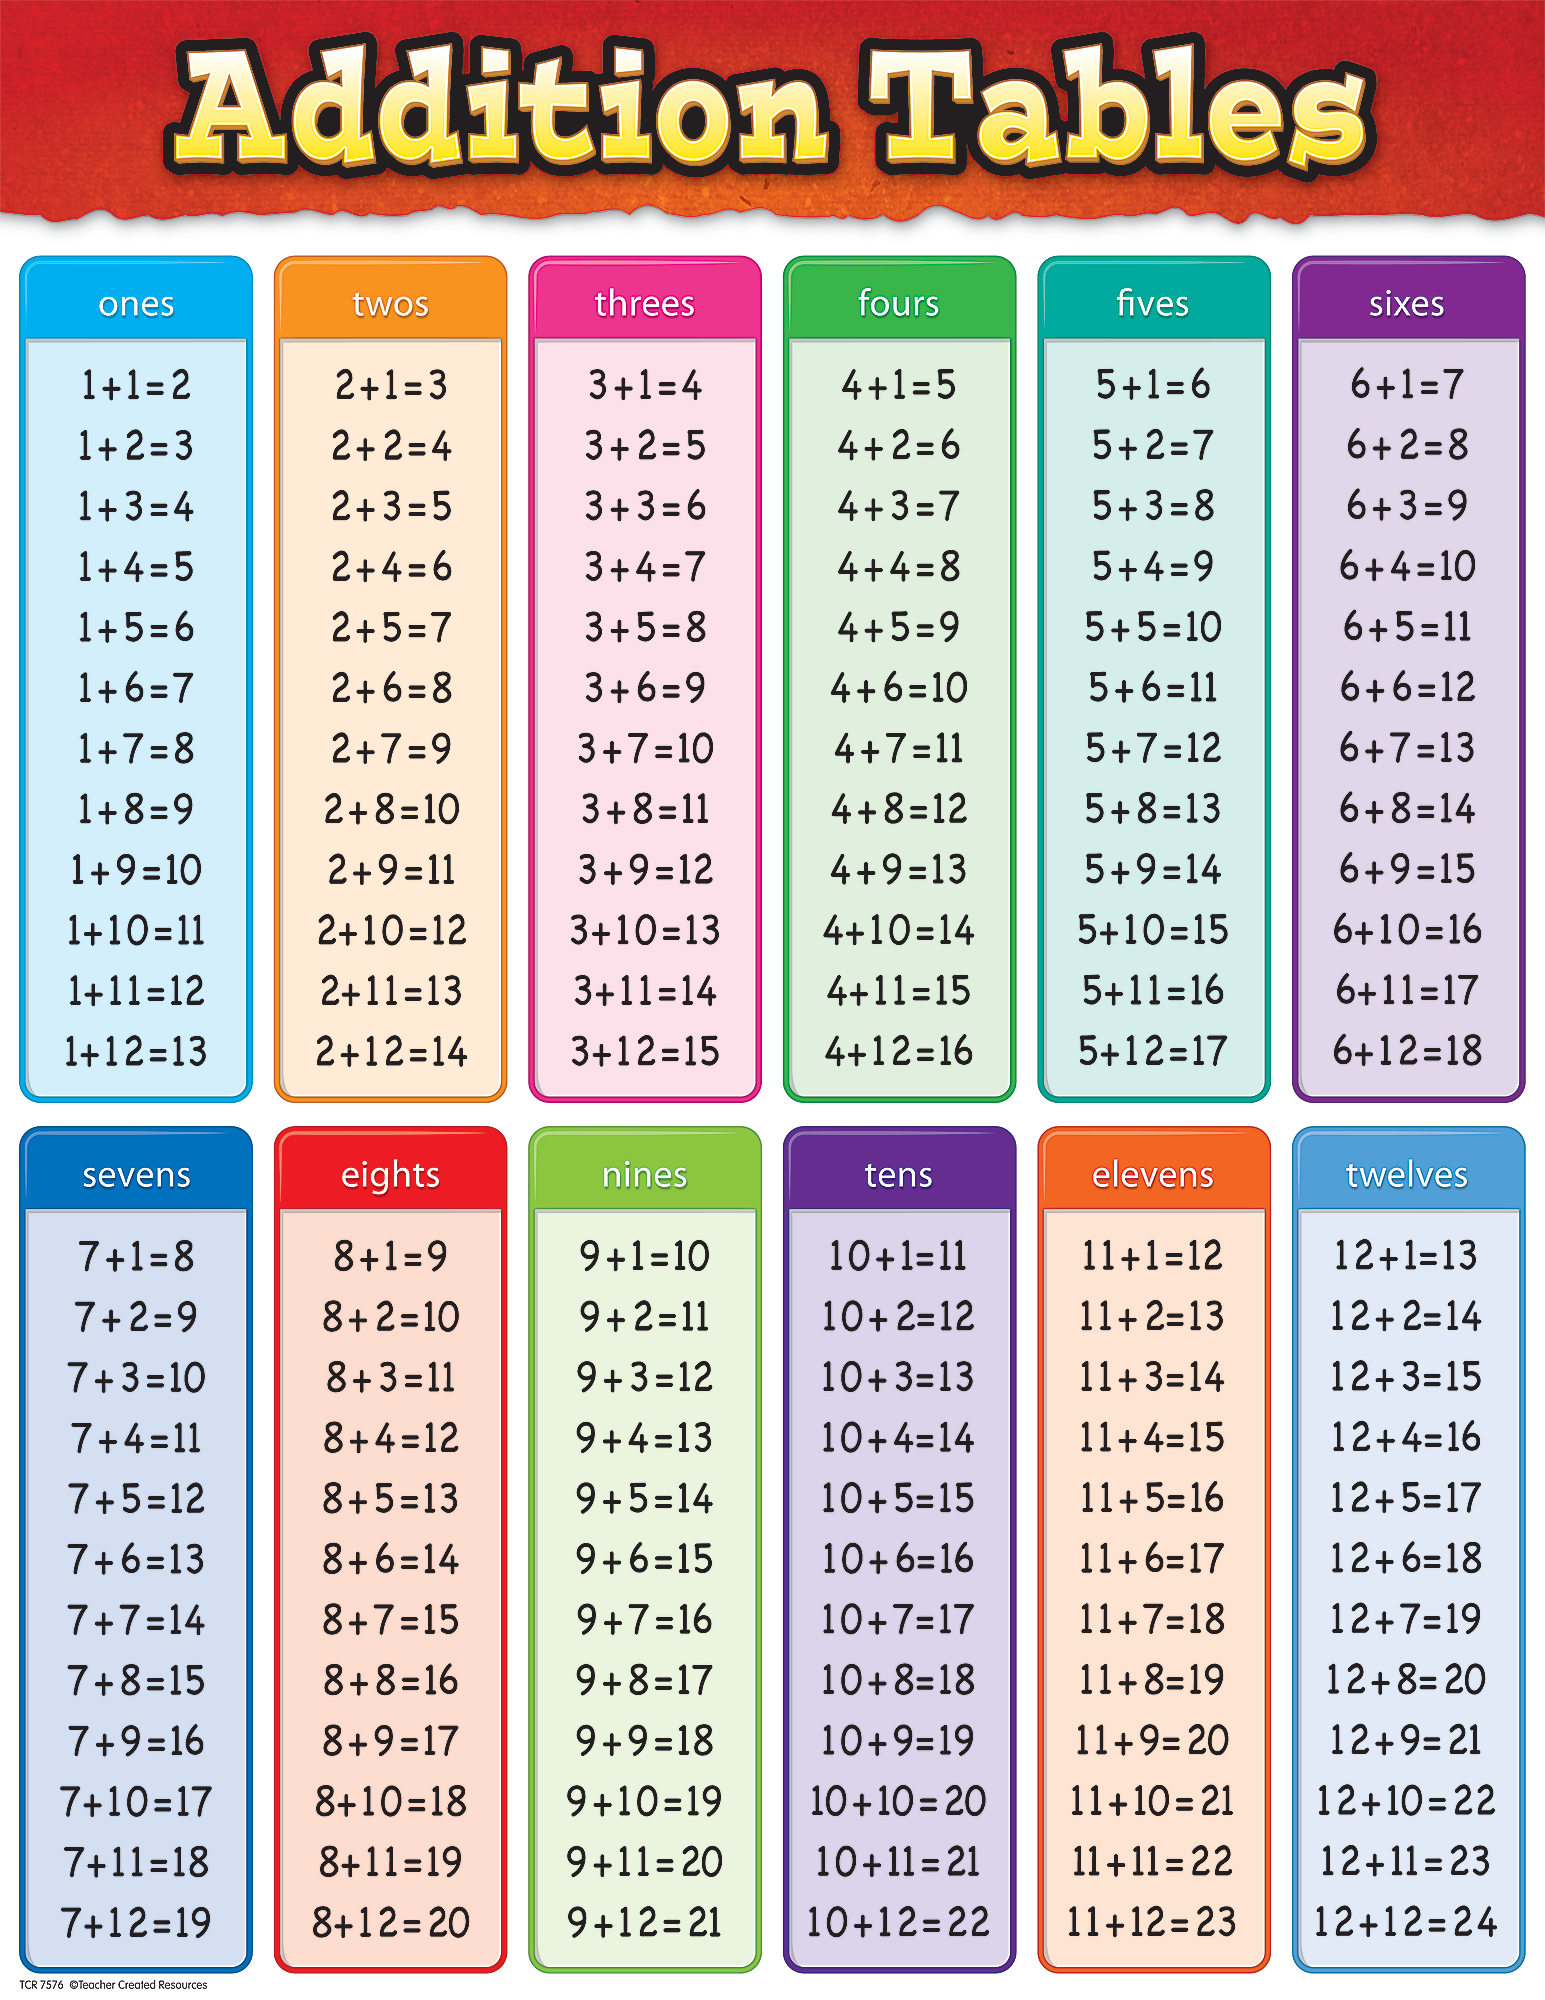 Addition Tables Chart With Images